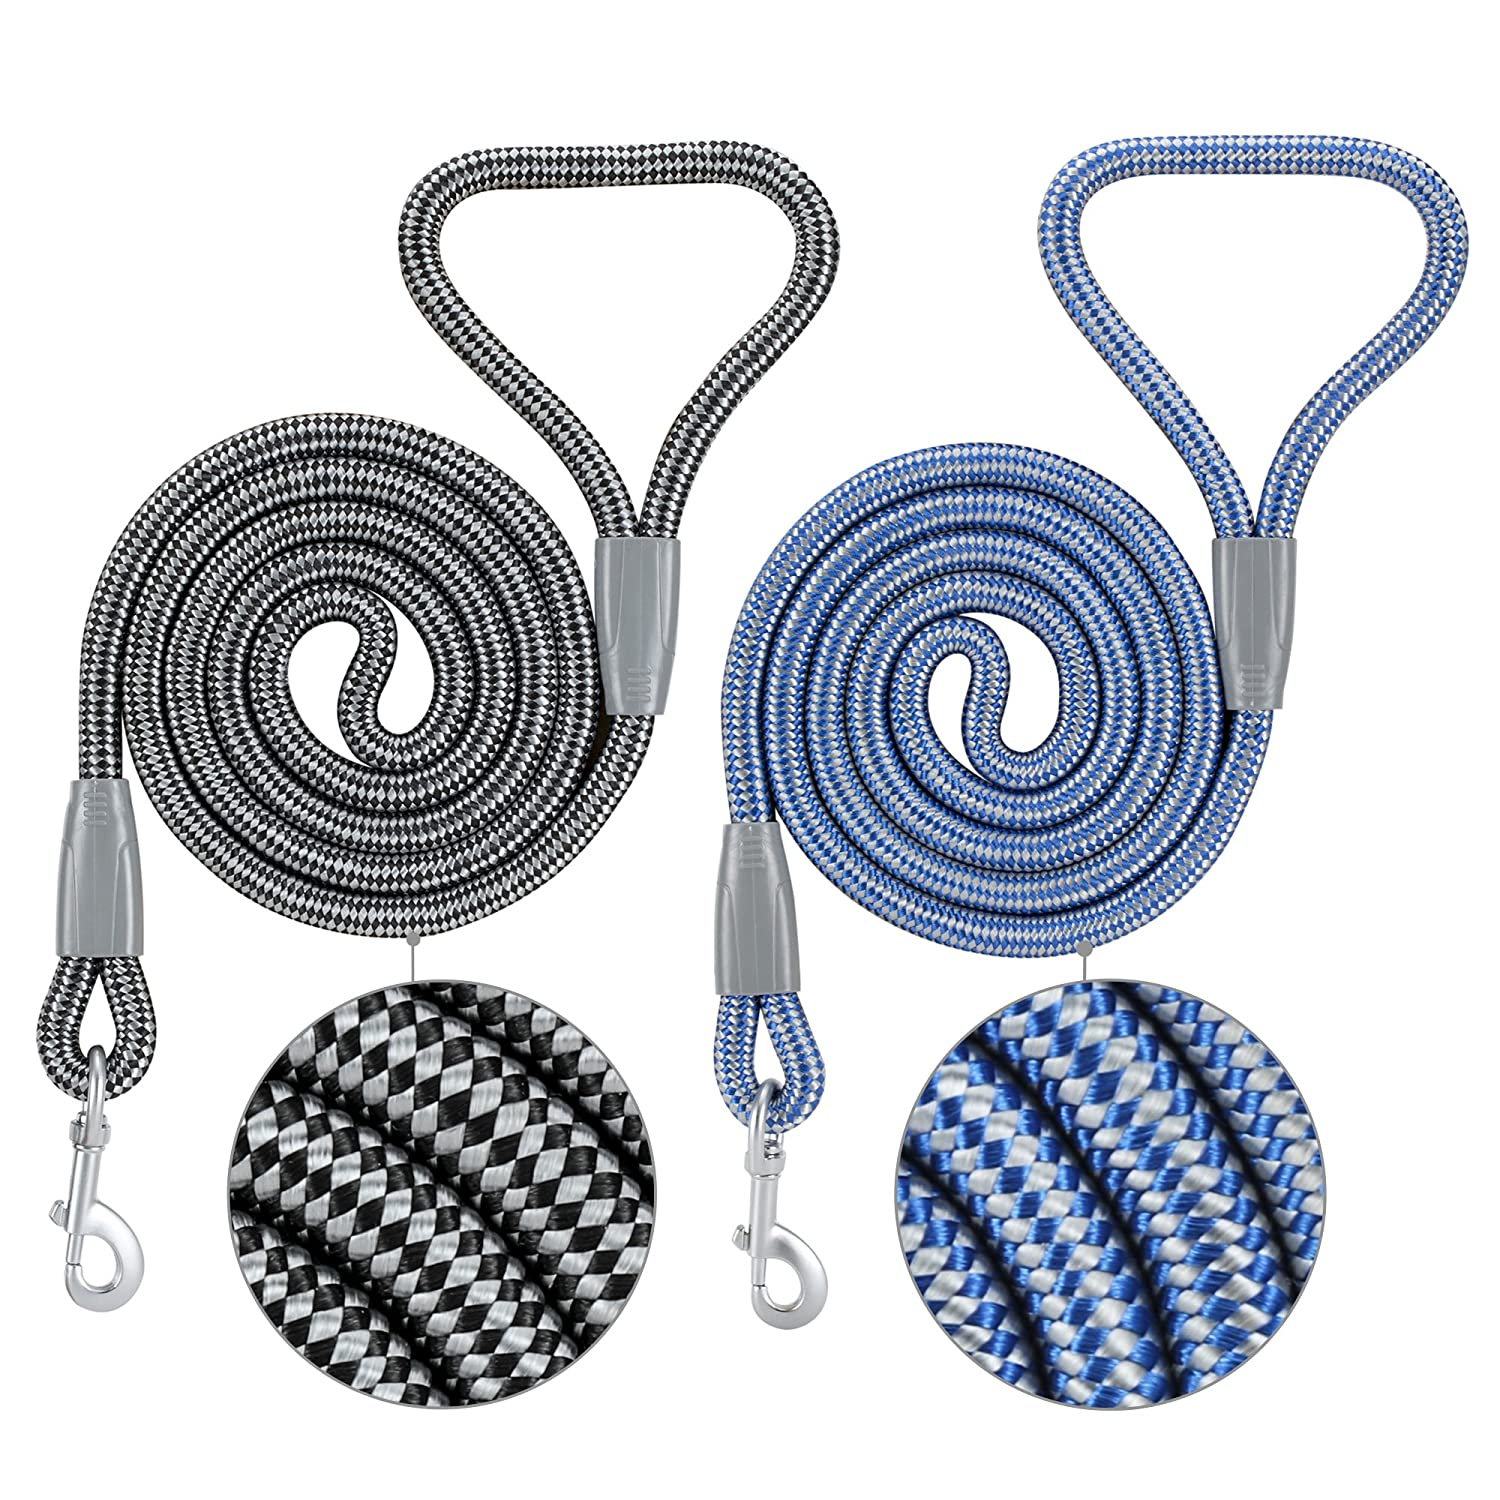 Black & bluee Small Width 0.6\ Black & bluee Small Width 0.6\ 11Z Pet Holiday Discount Mountain Climbing Rope Dog Leash 2PCS Black & bluee 4 or 6 FT Long Sturdy Nylon Suitable for Small Medium Large Dogs Cat Lead